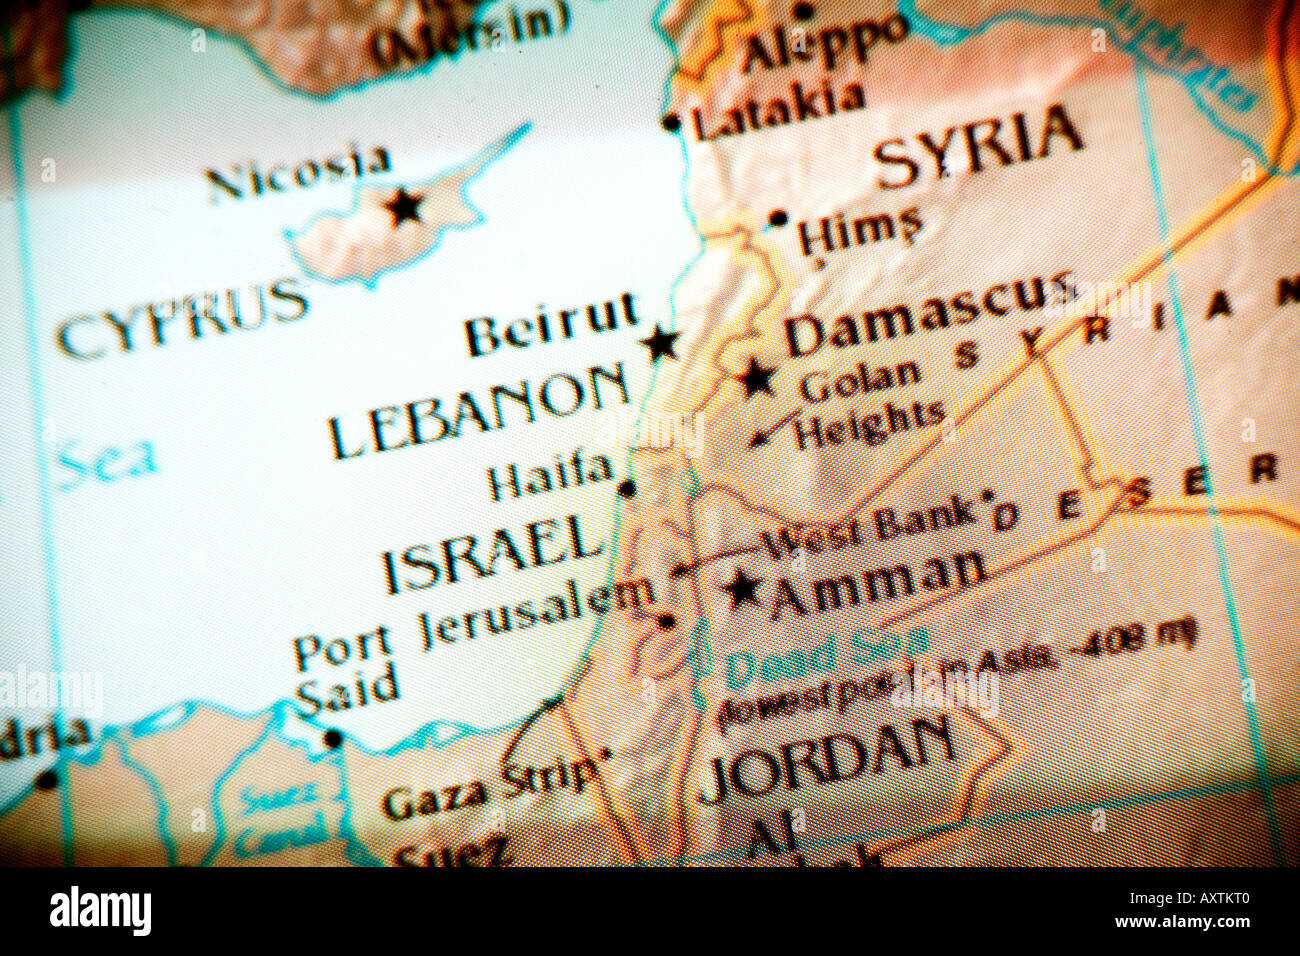 Current Map Showing The Countries Syria Cyprus Lebanon Israel